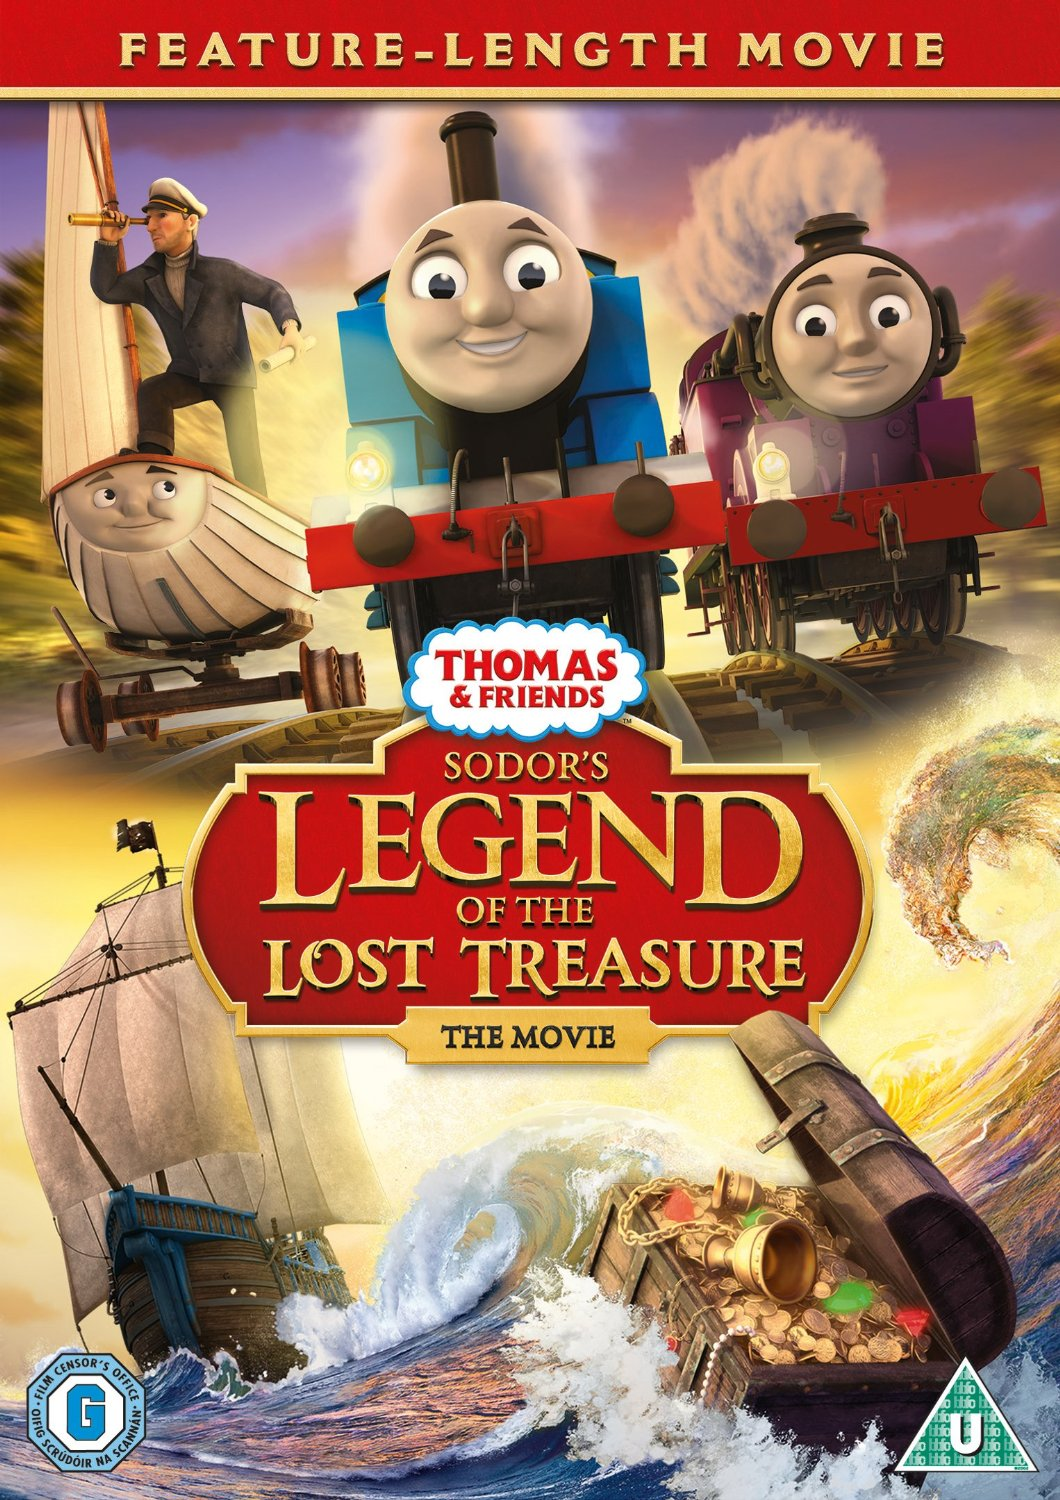 Thomas & Friends: Sodor's Legend of the Lost Treasure DVD release